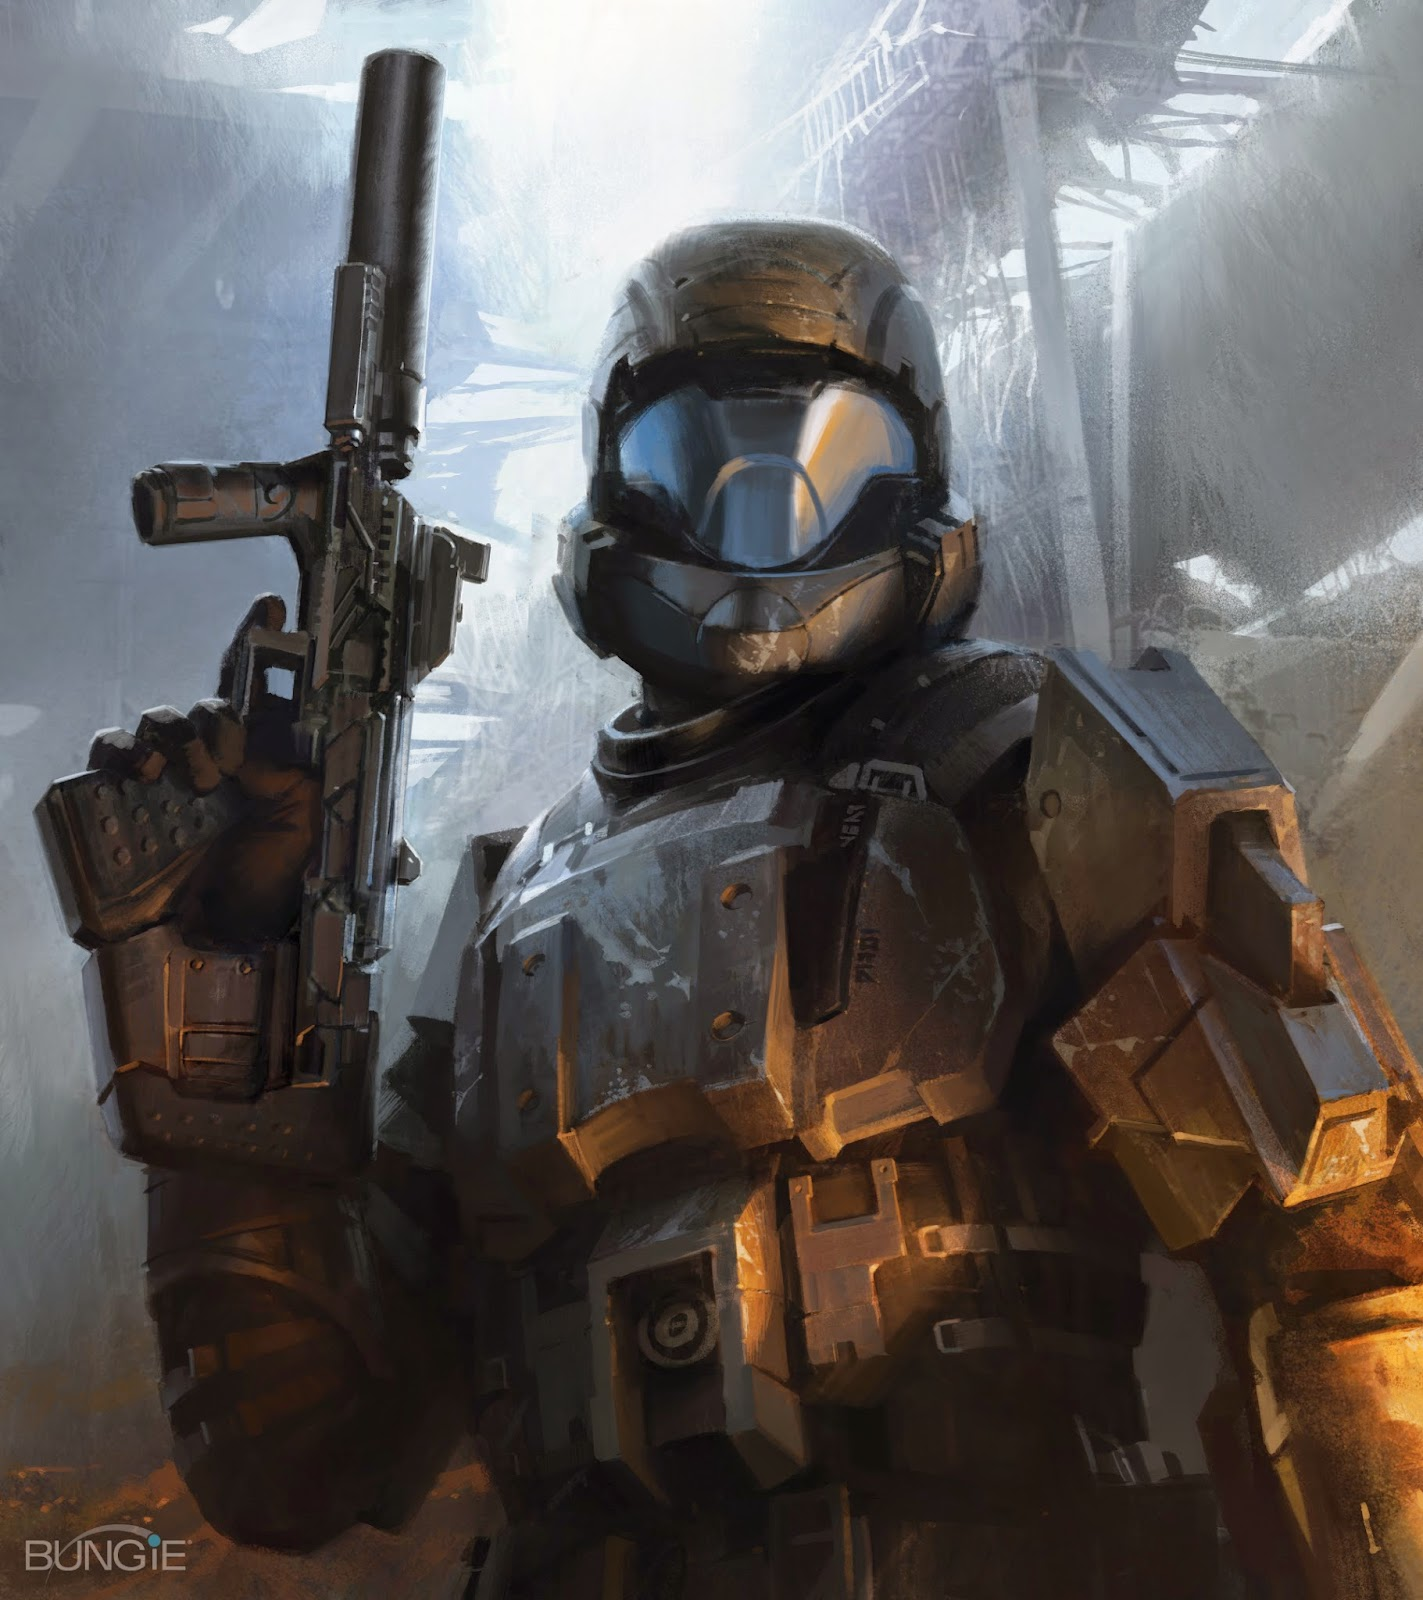 Future war stories fws armory silenced weapons by yoel - Halo odst images ...